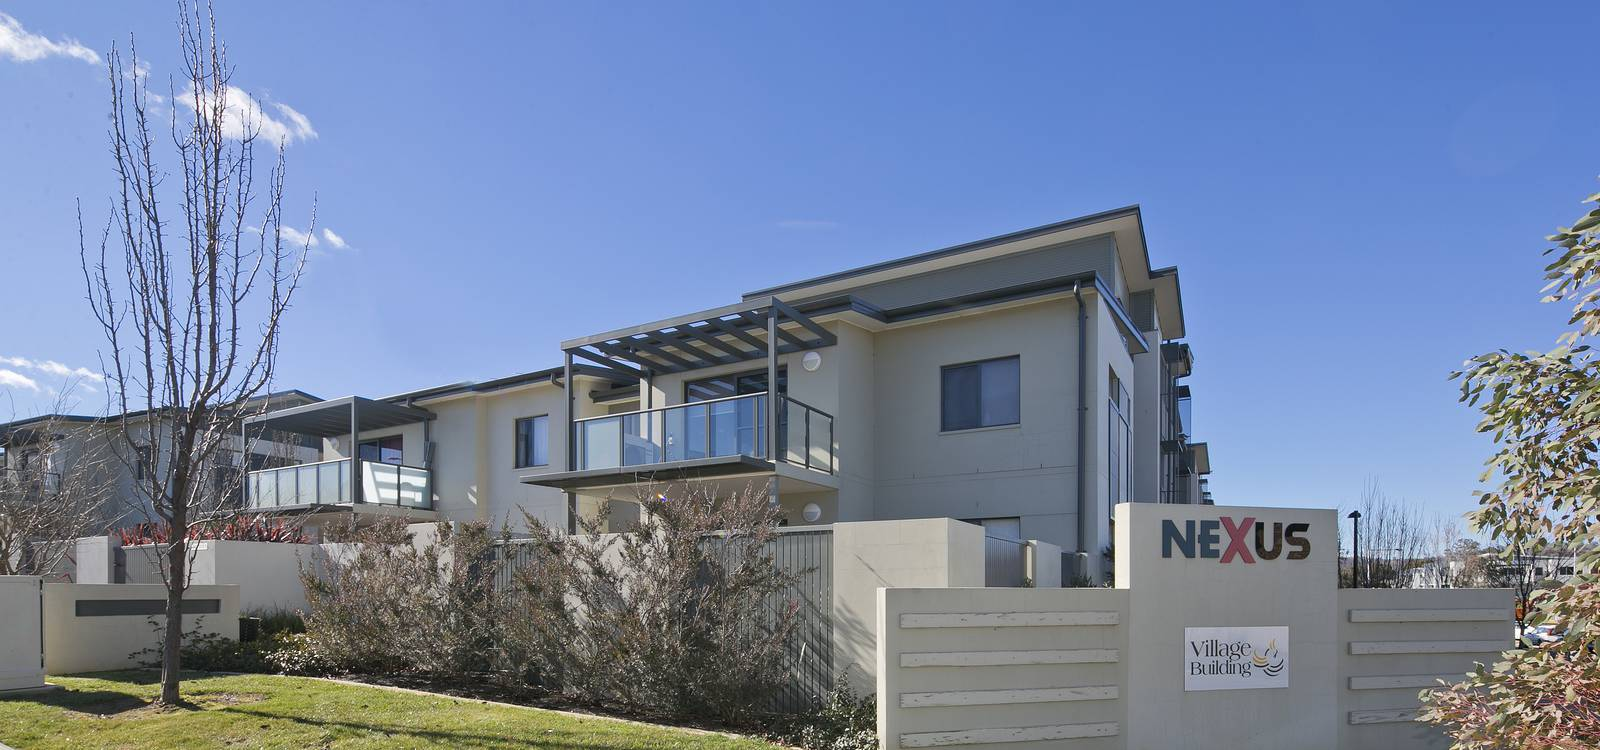 39/82 Henry Kendall Street FRANKLIN, ACT 2913 - photo 1